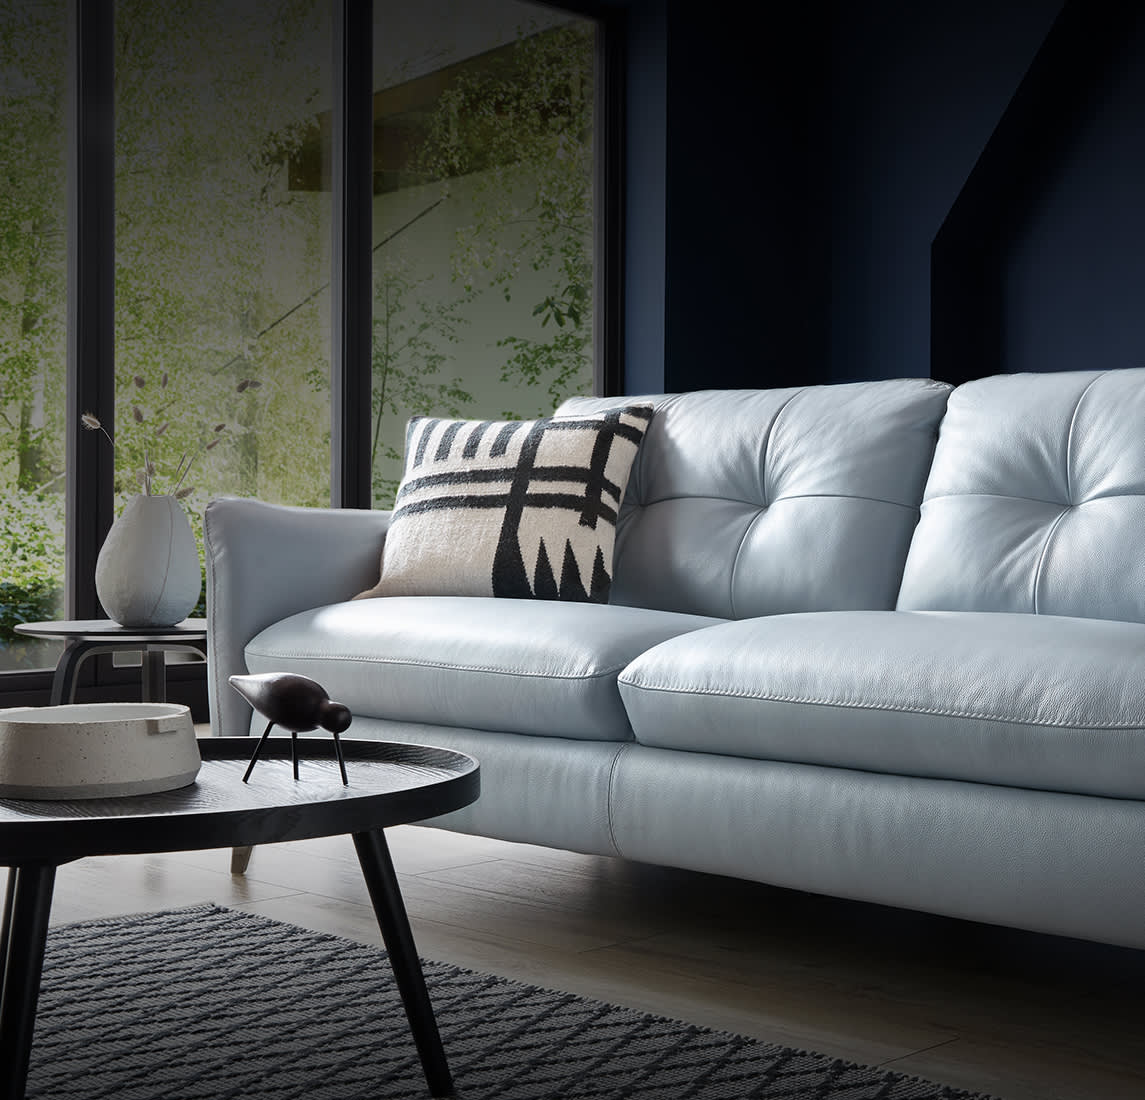 Sofology Mimi blue leather sofa